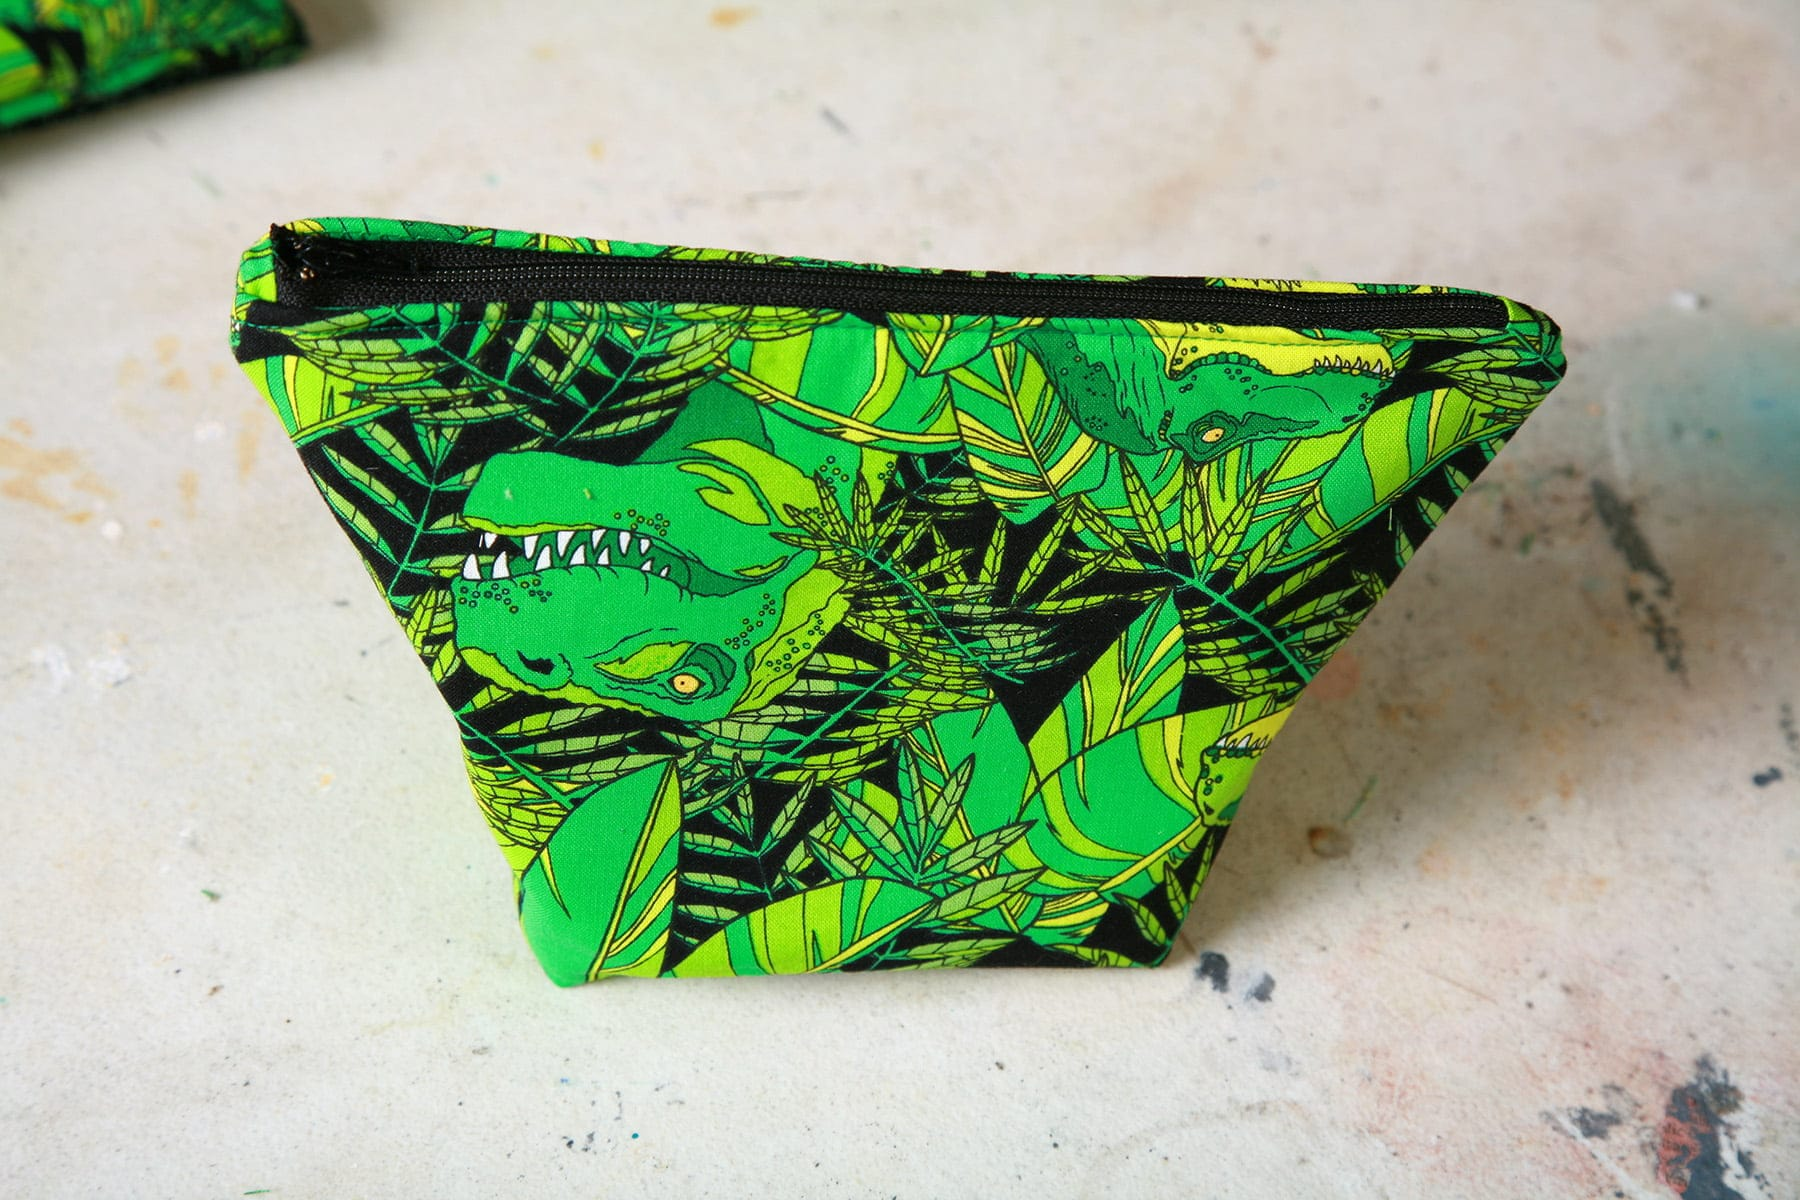 A finished makeup bag, made from a green dinosaur print fabric.